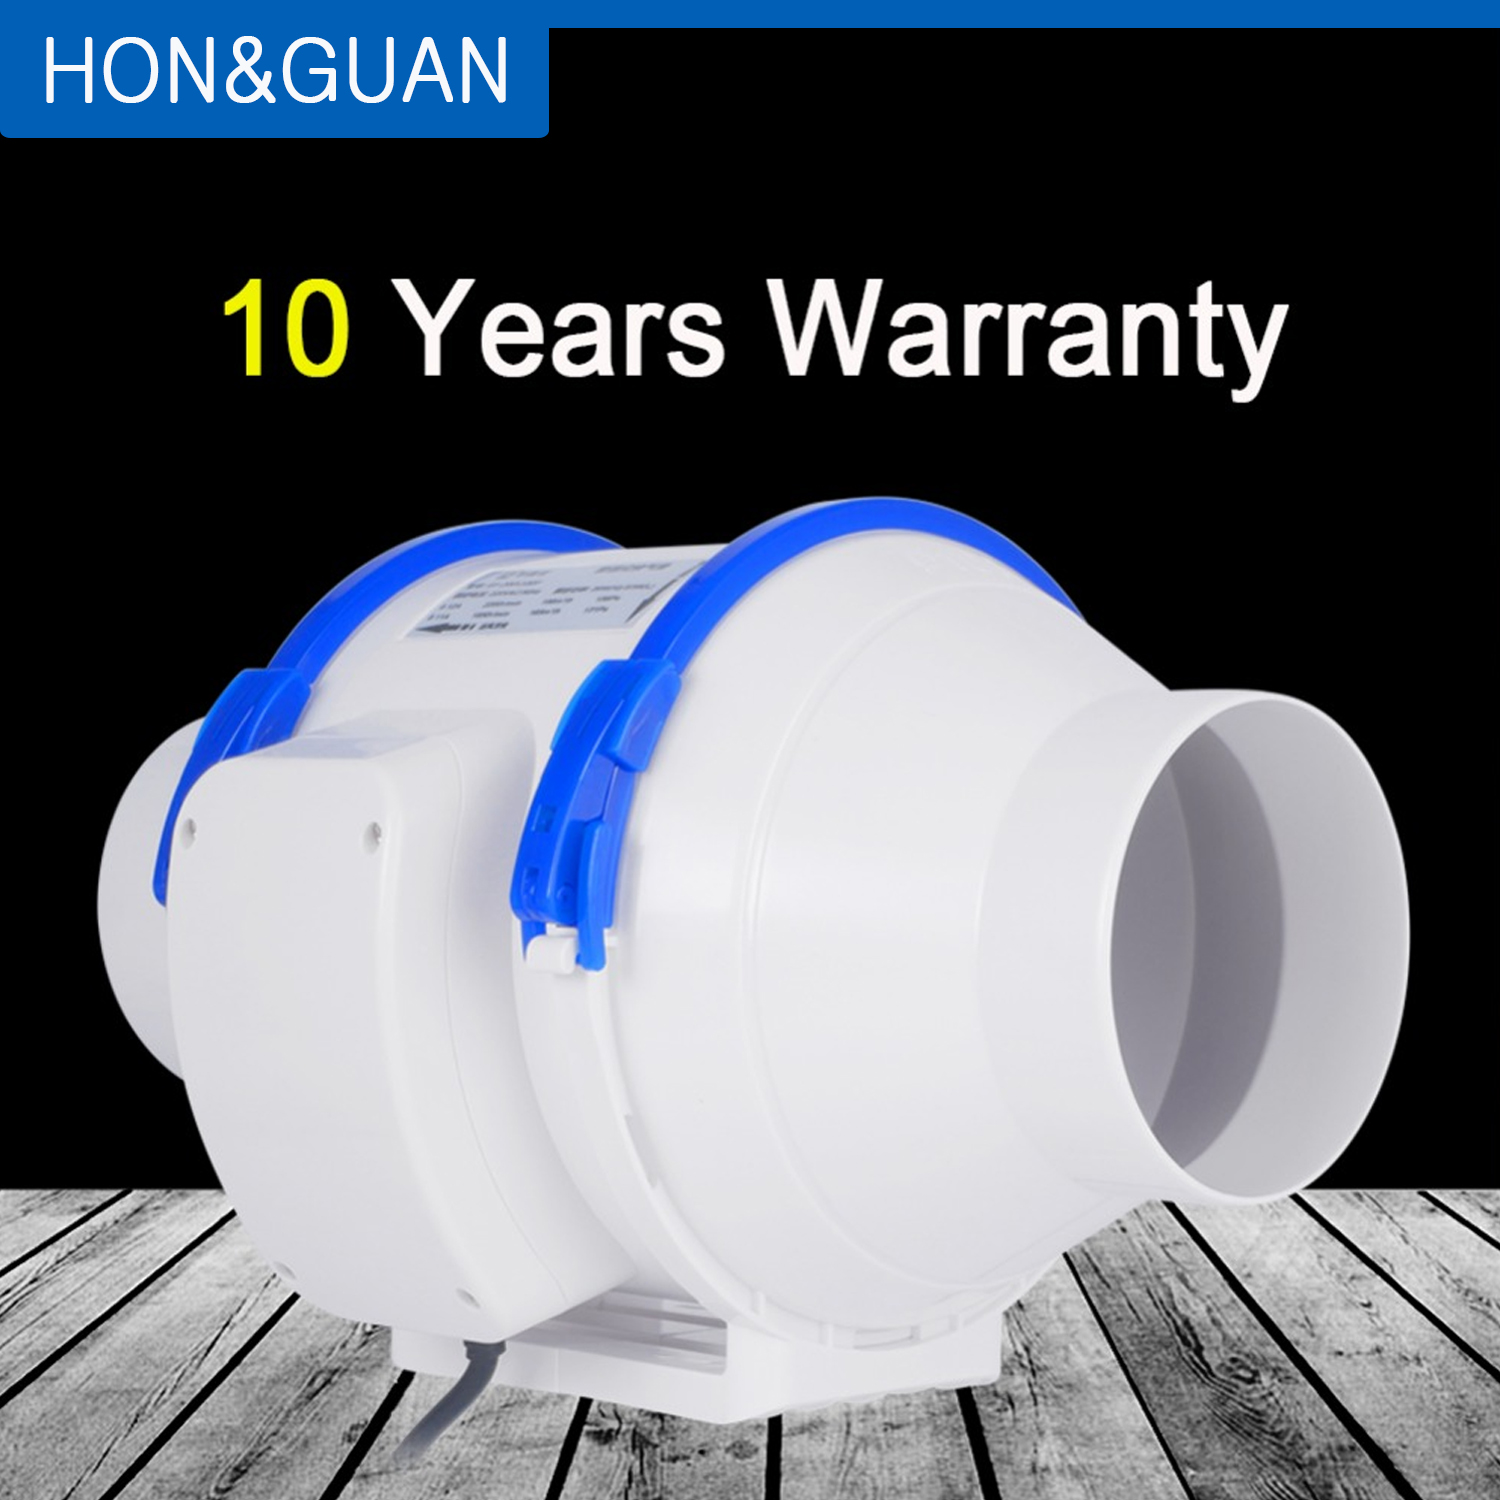 Hon Guan 4 8 Home Silent Inline Duct Fan with Strong Ventilation System Extractor Fan for